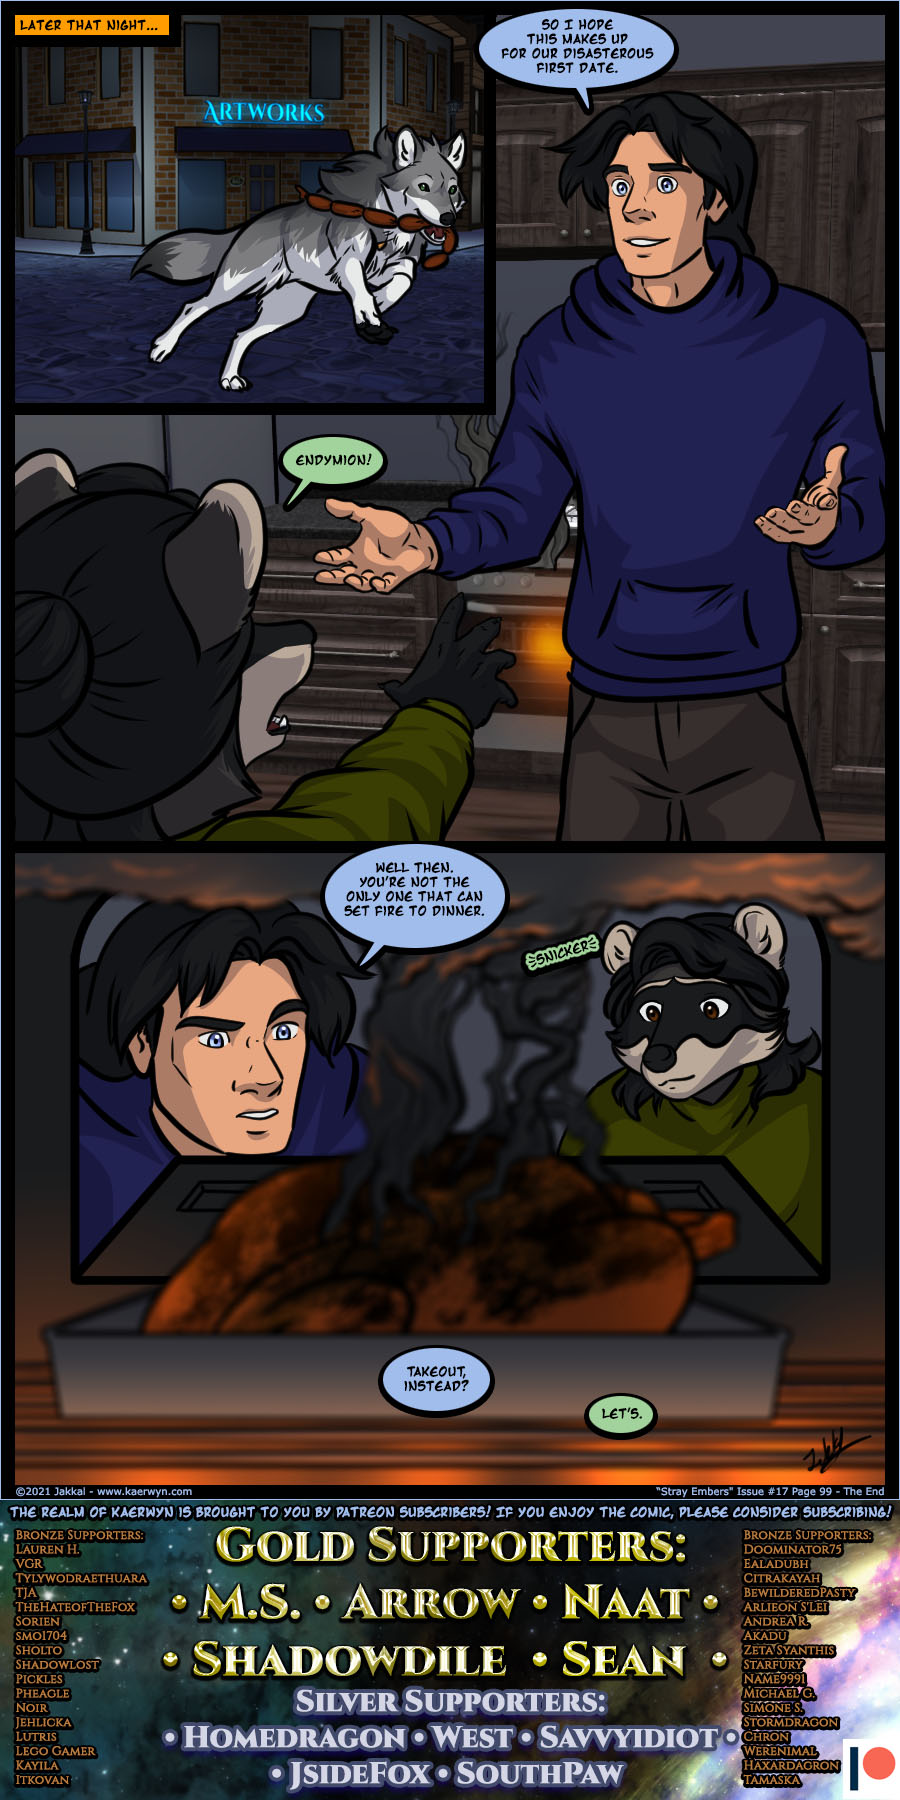 Kaerwyn Issue 17 Page 99 - The End